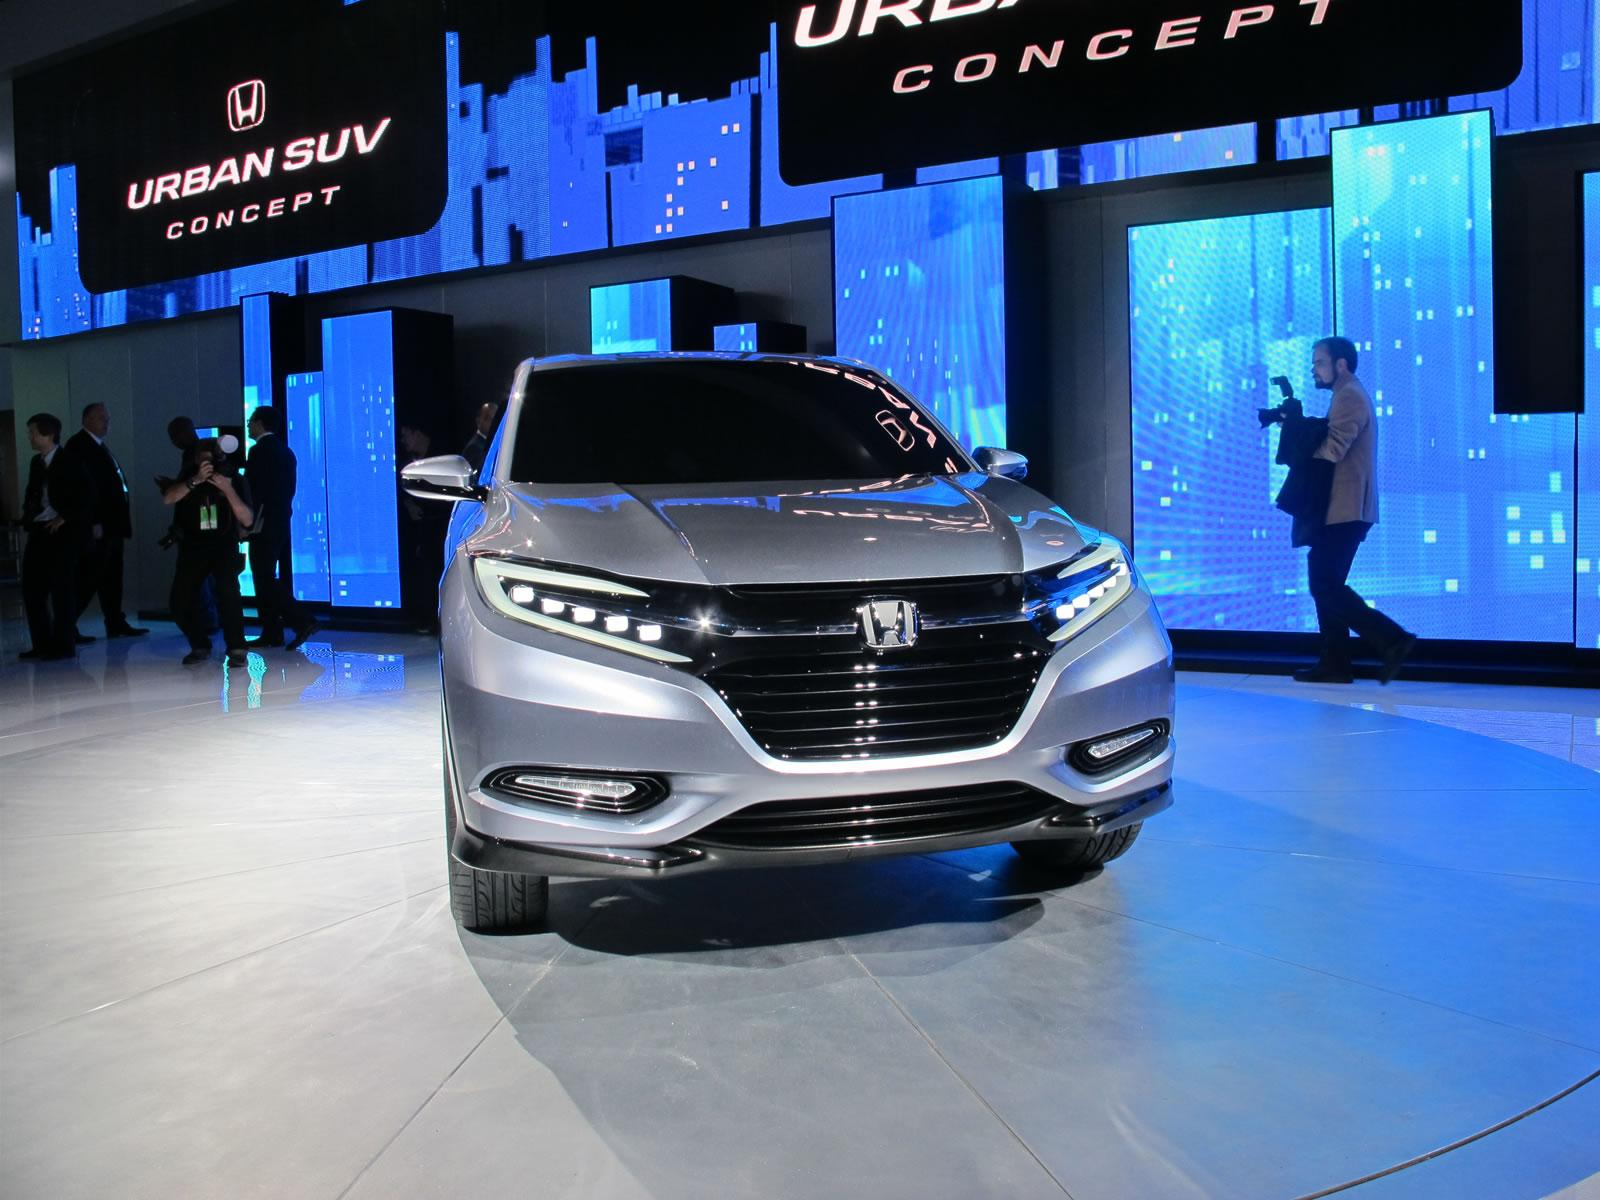 Sal n de detroit 2013 honda urban suv concept para la for 10 best audiobooks of 2013 salon